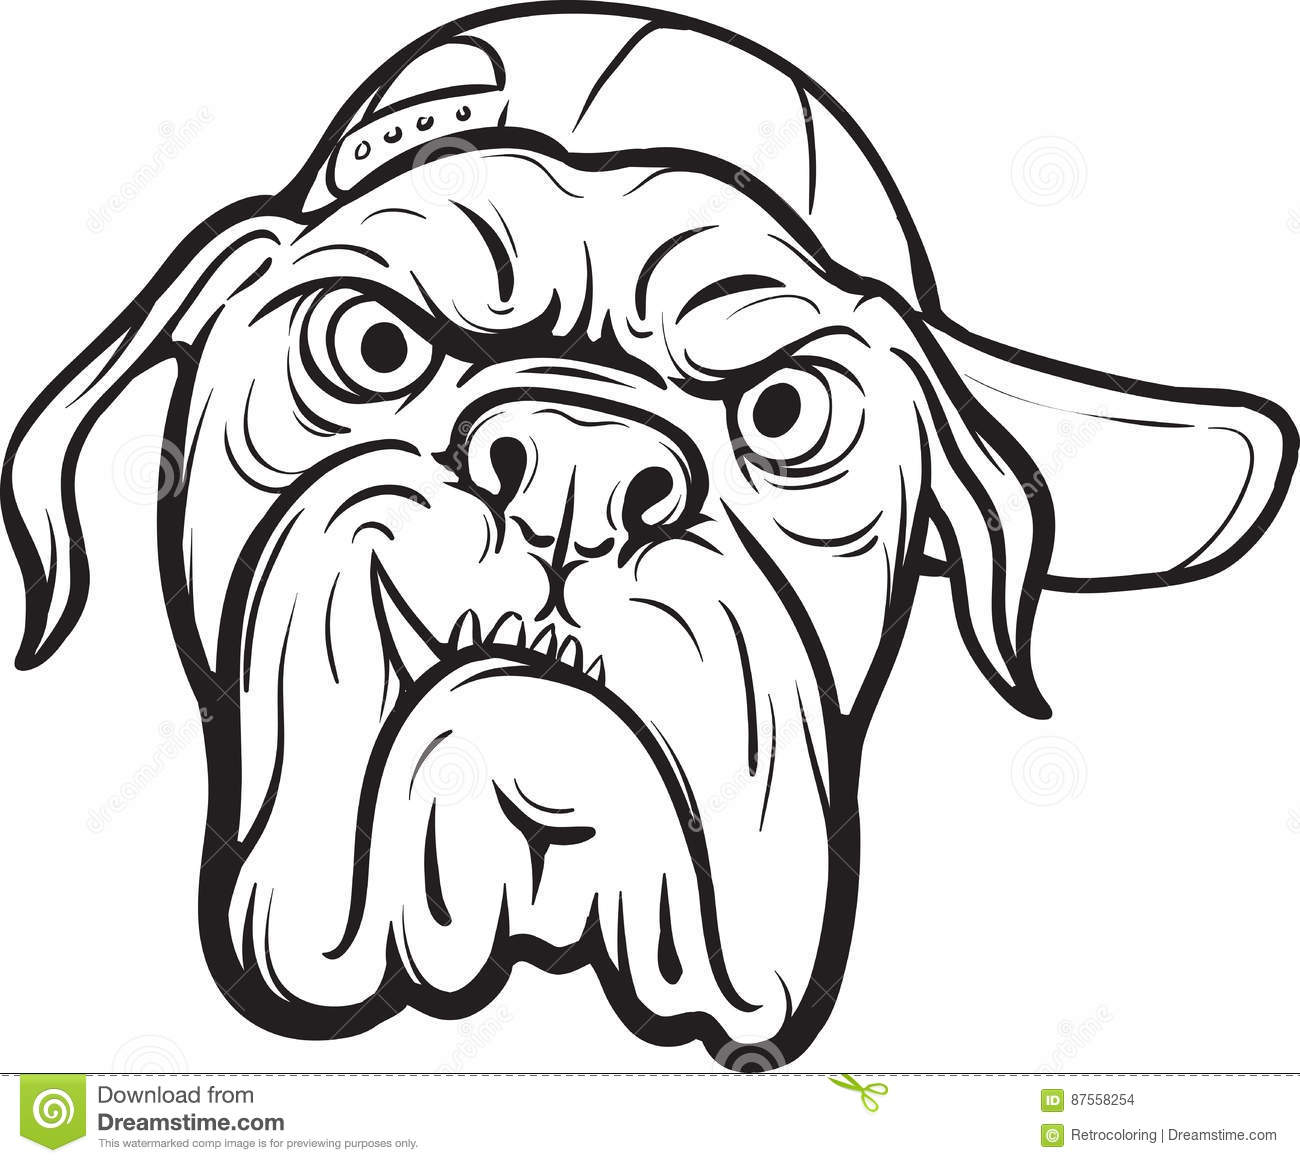 Whiteboard Drawing Angry Dog Face Stock Vector Illustration Of